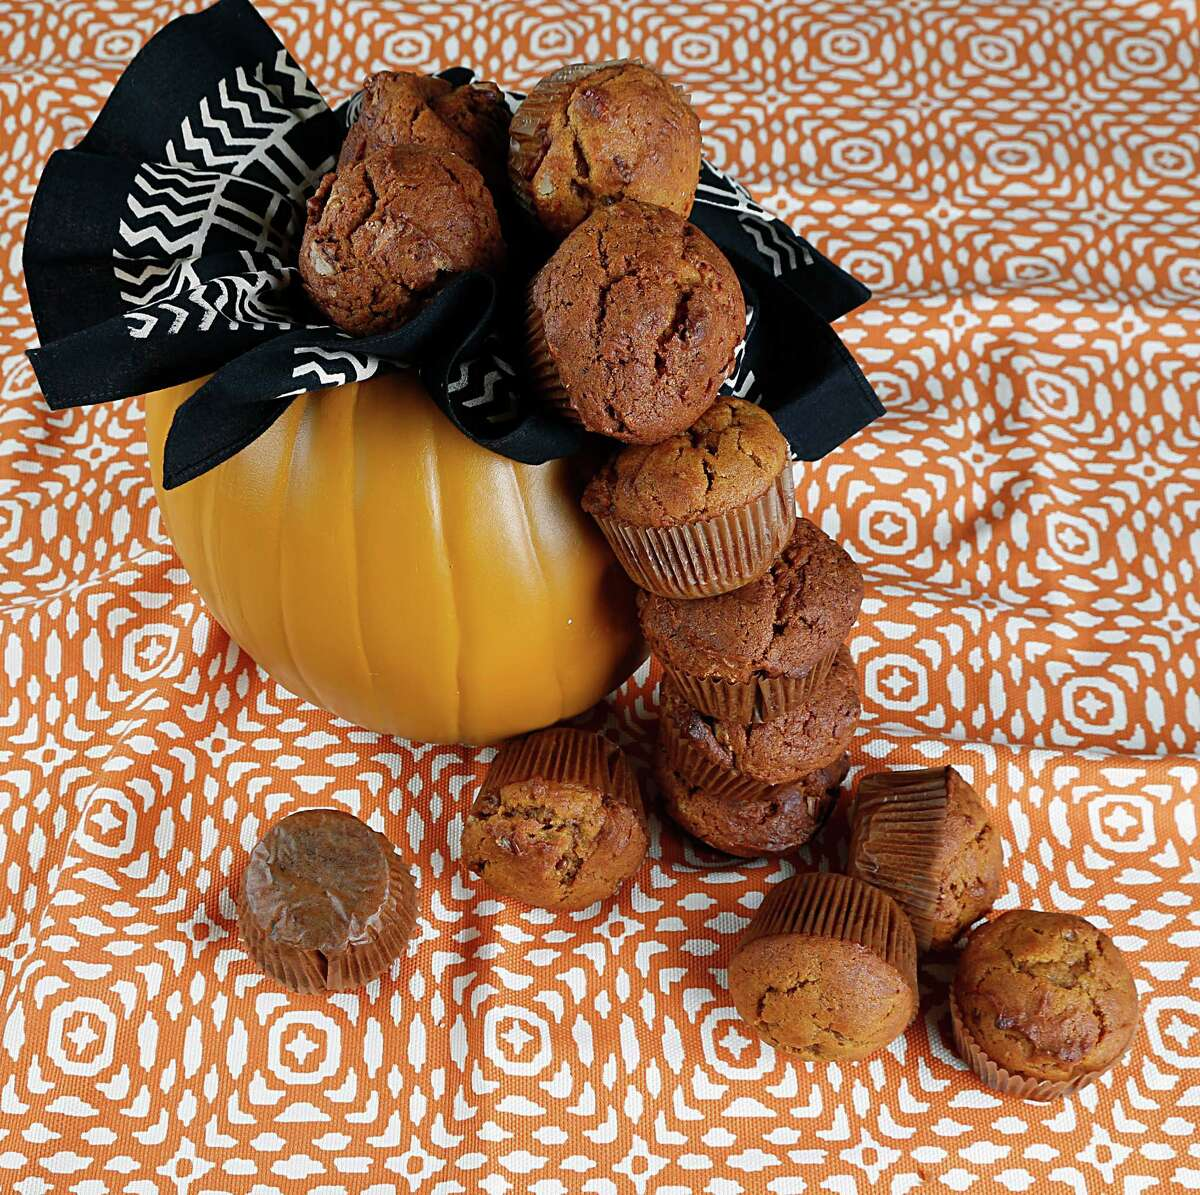 Pudding mix adds rich flavor to the batter for Pumpkin Muffins.